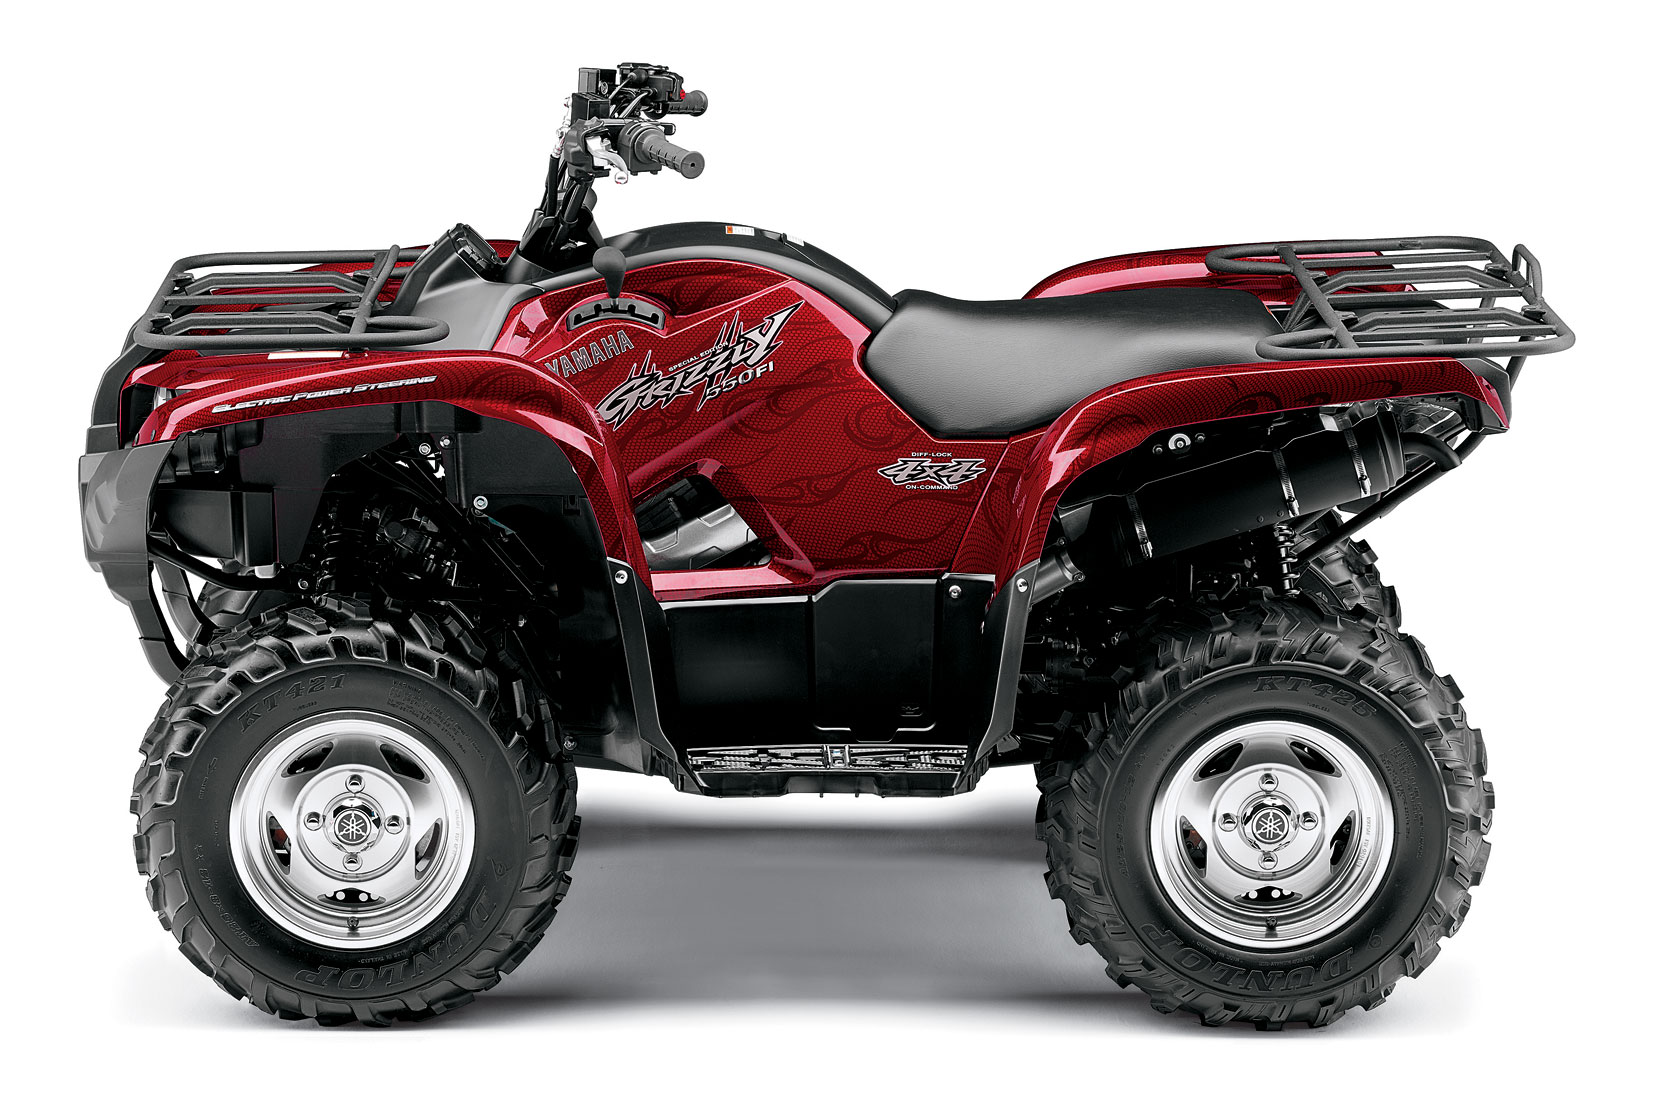 Yamaha grizzly 550 fi eps special edition 2008 2009 for 2018 yamaha grizzly 700 hp